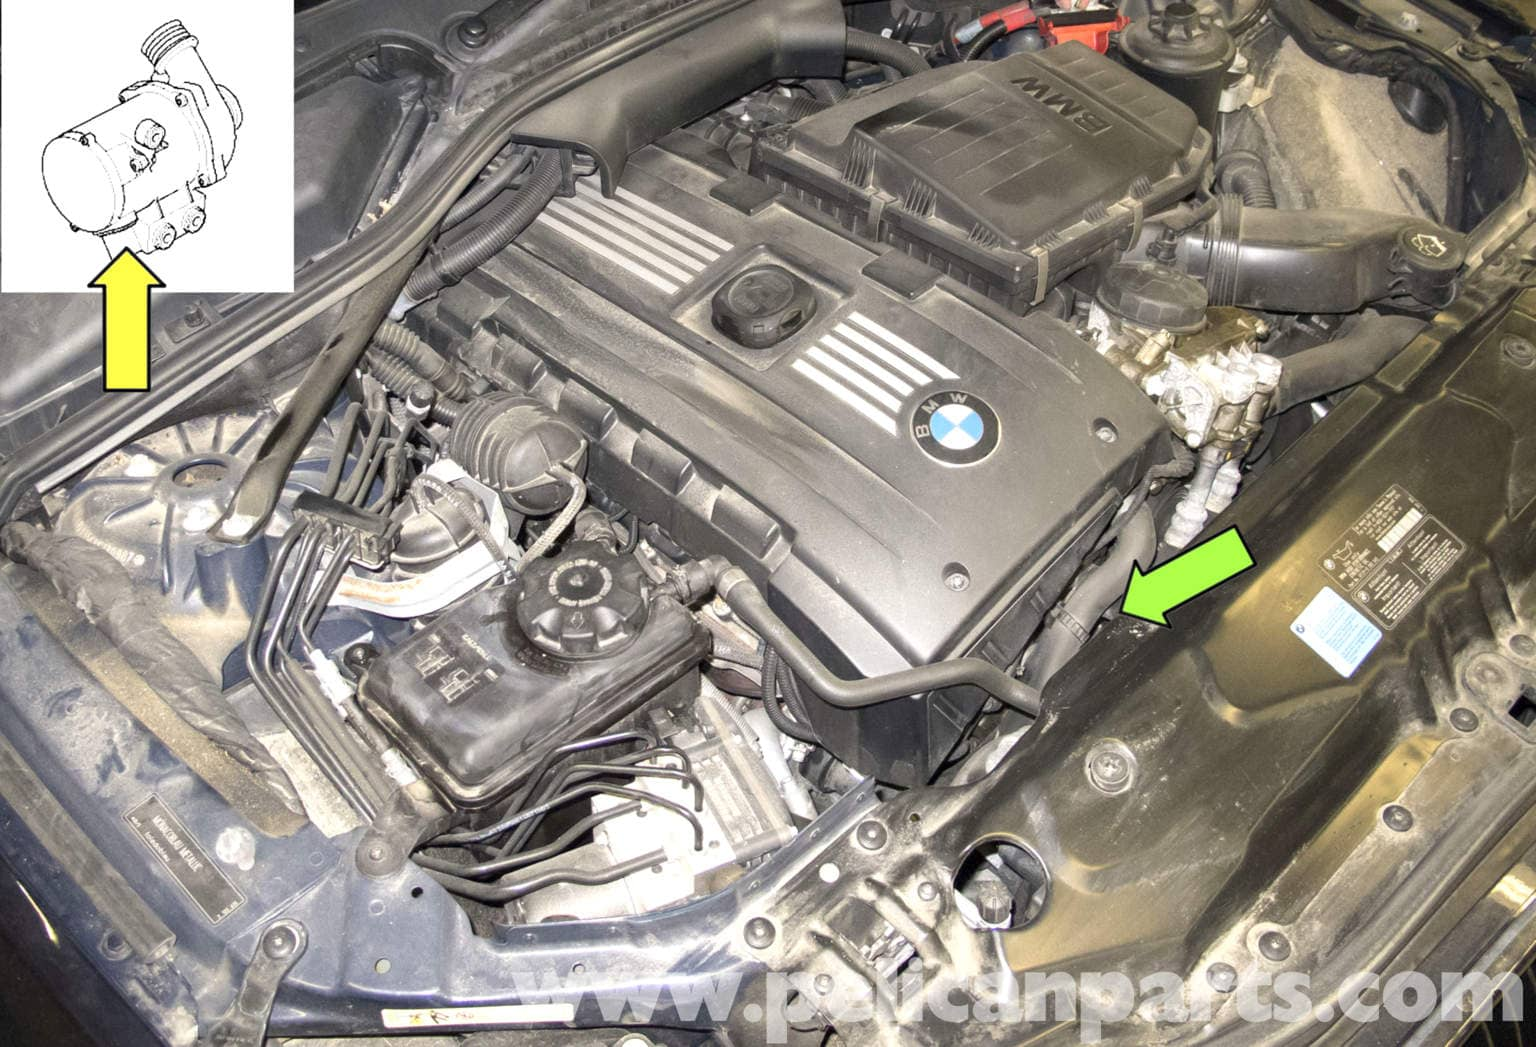 2008 Bmw X3 Fuse Diagram Real Wiring 323i Box E60 5 Series Water Pump Testing Pelican Parts 2007 2000